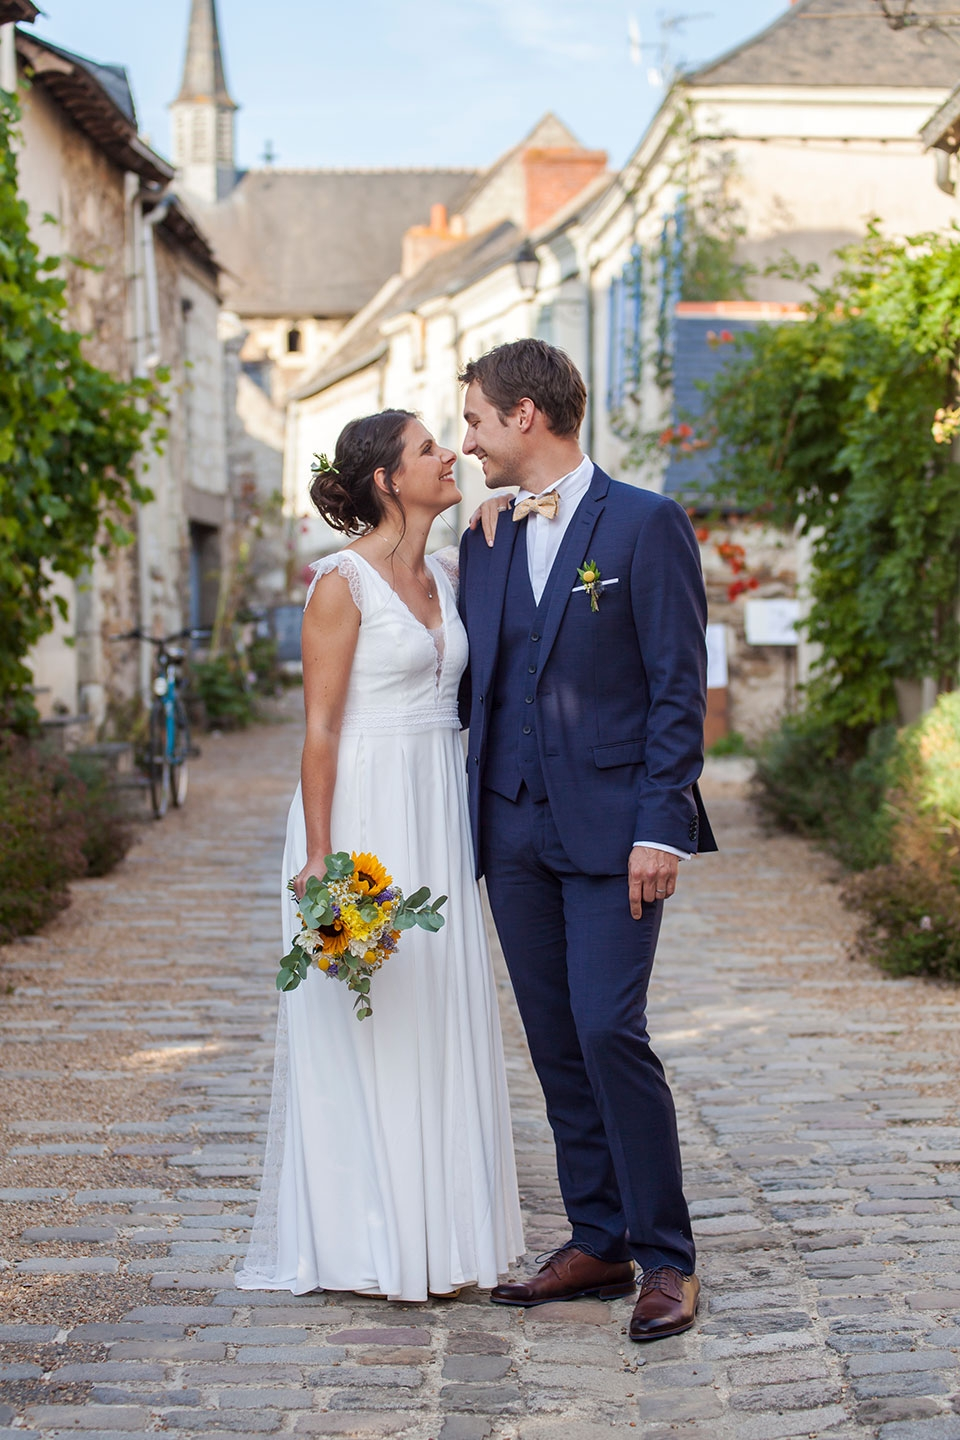 particuliers-evenements-mariage-oui-elise&quentin-66